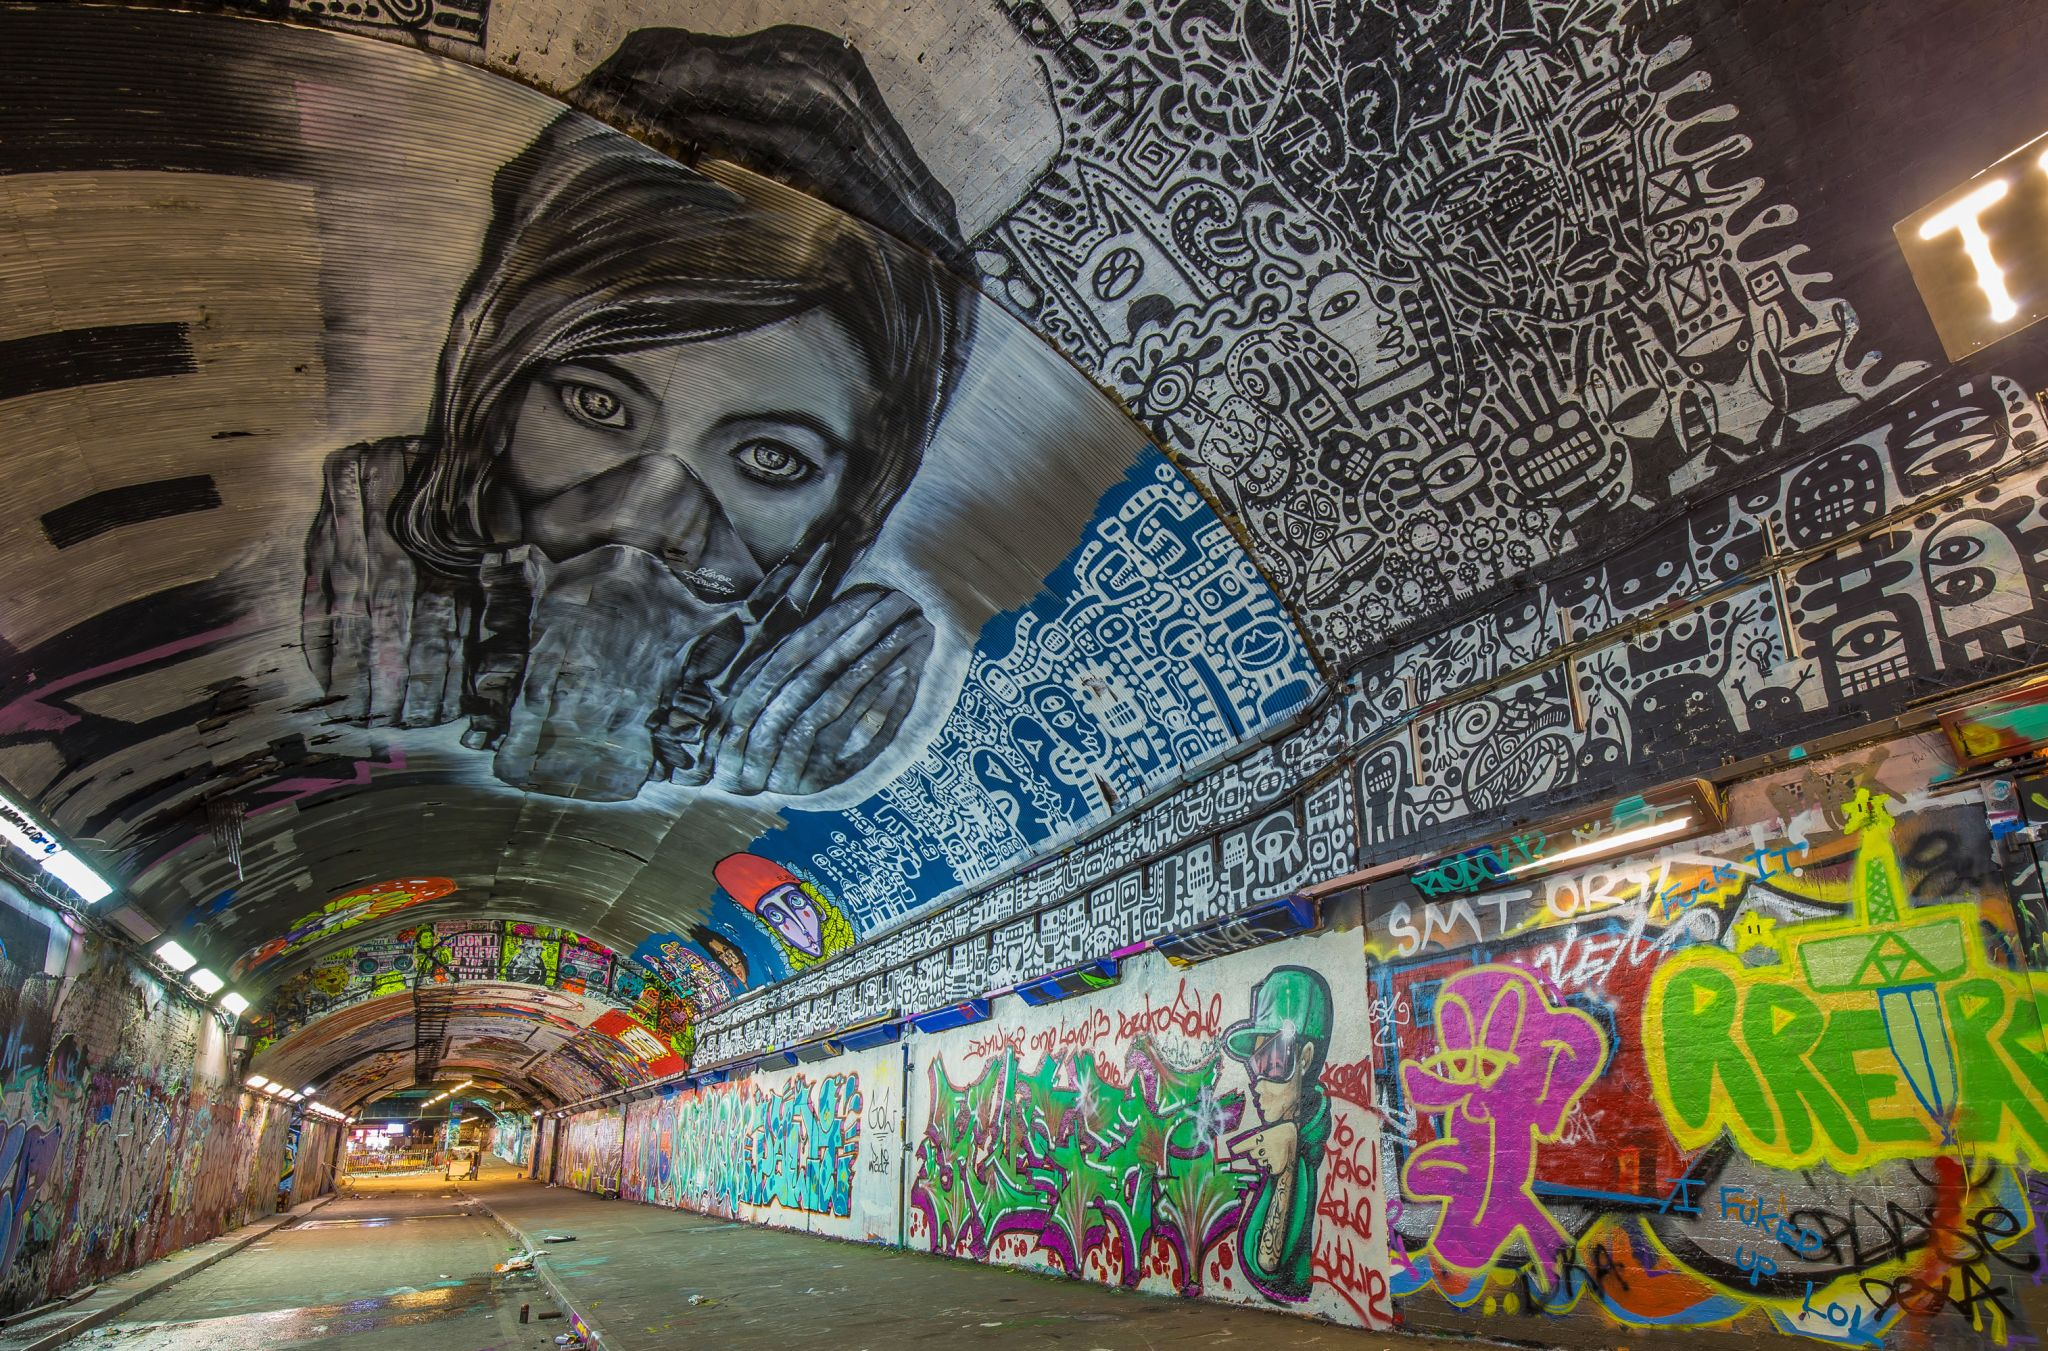 Leake Street Graffiti Tunnel, United Kingdom